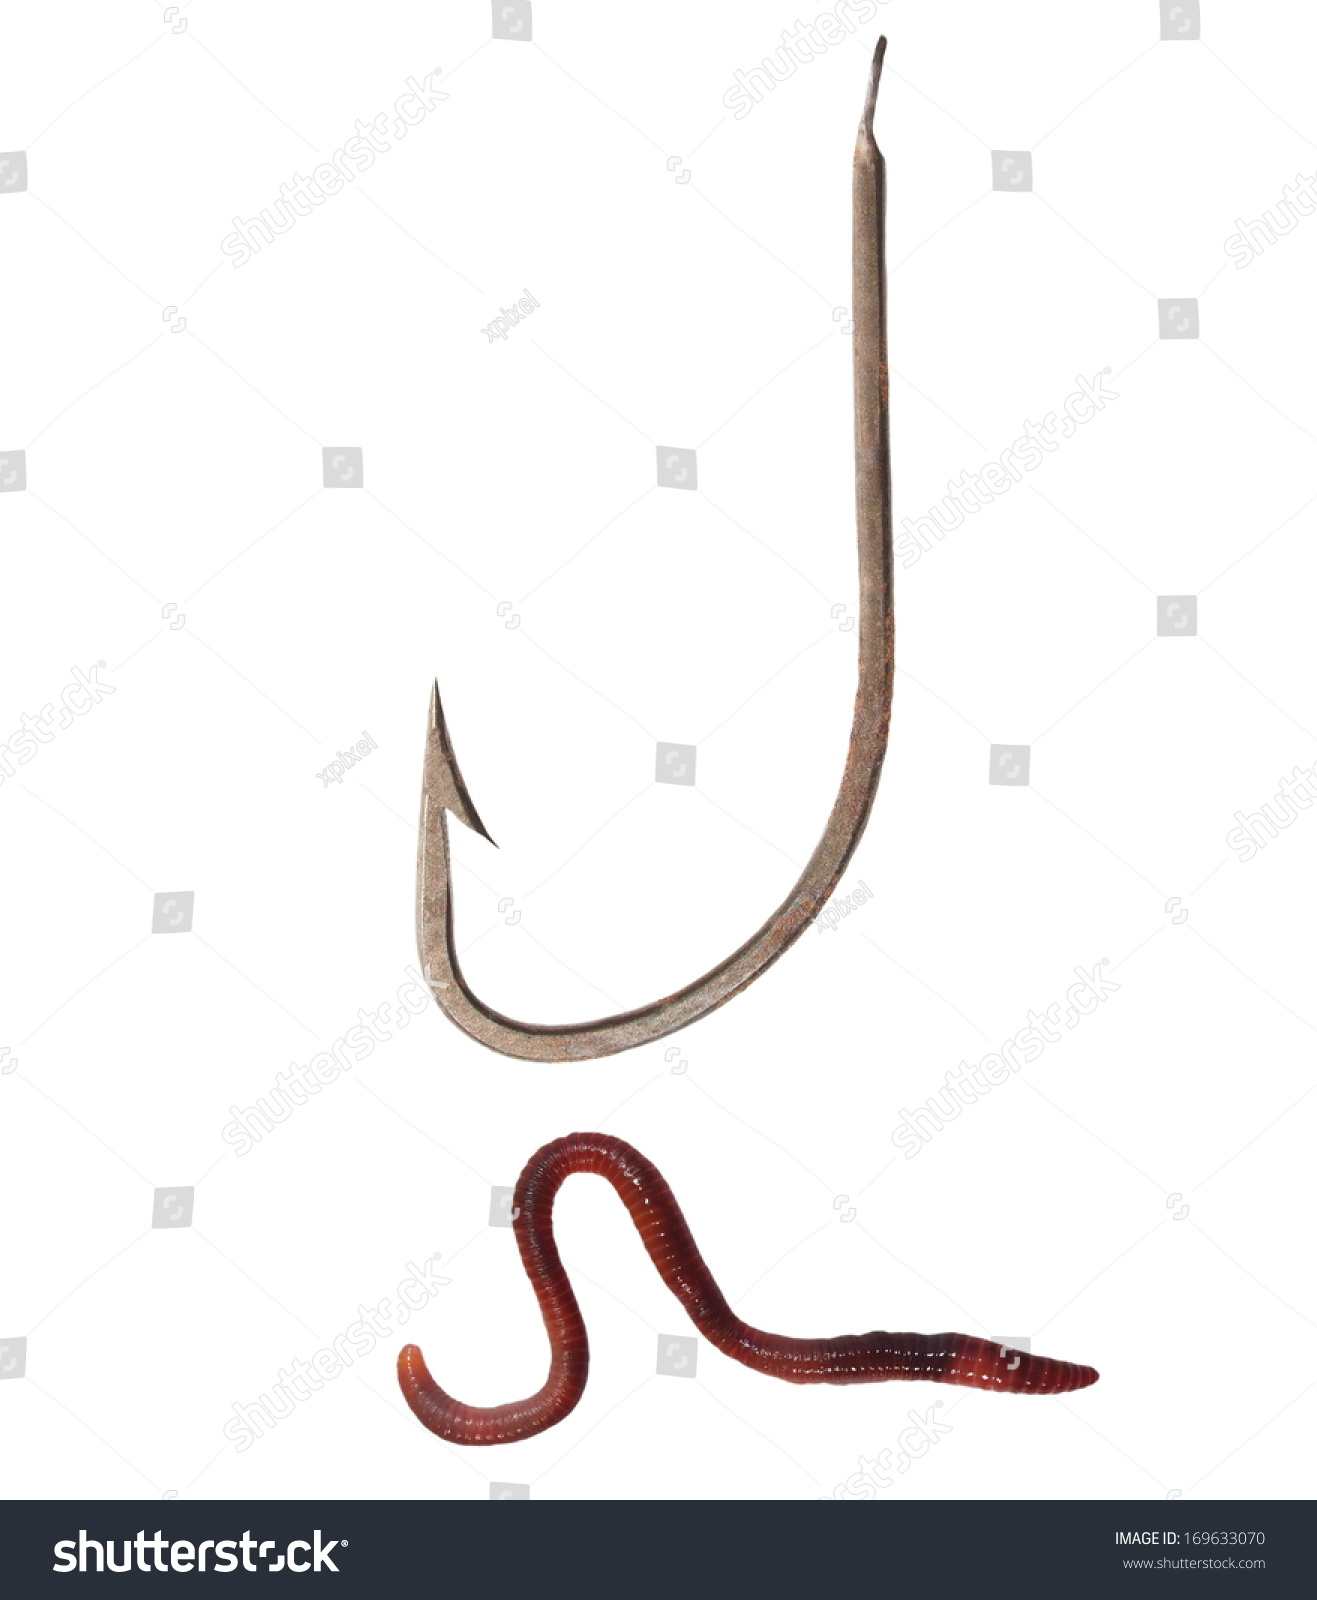 Old rusty fishing hook and earthworm brandling worm for Mealworms for fishing